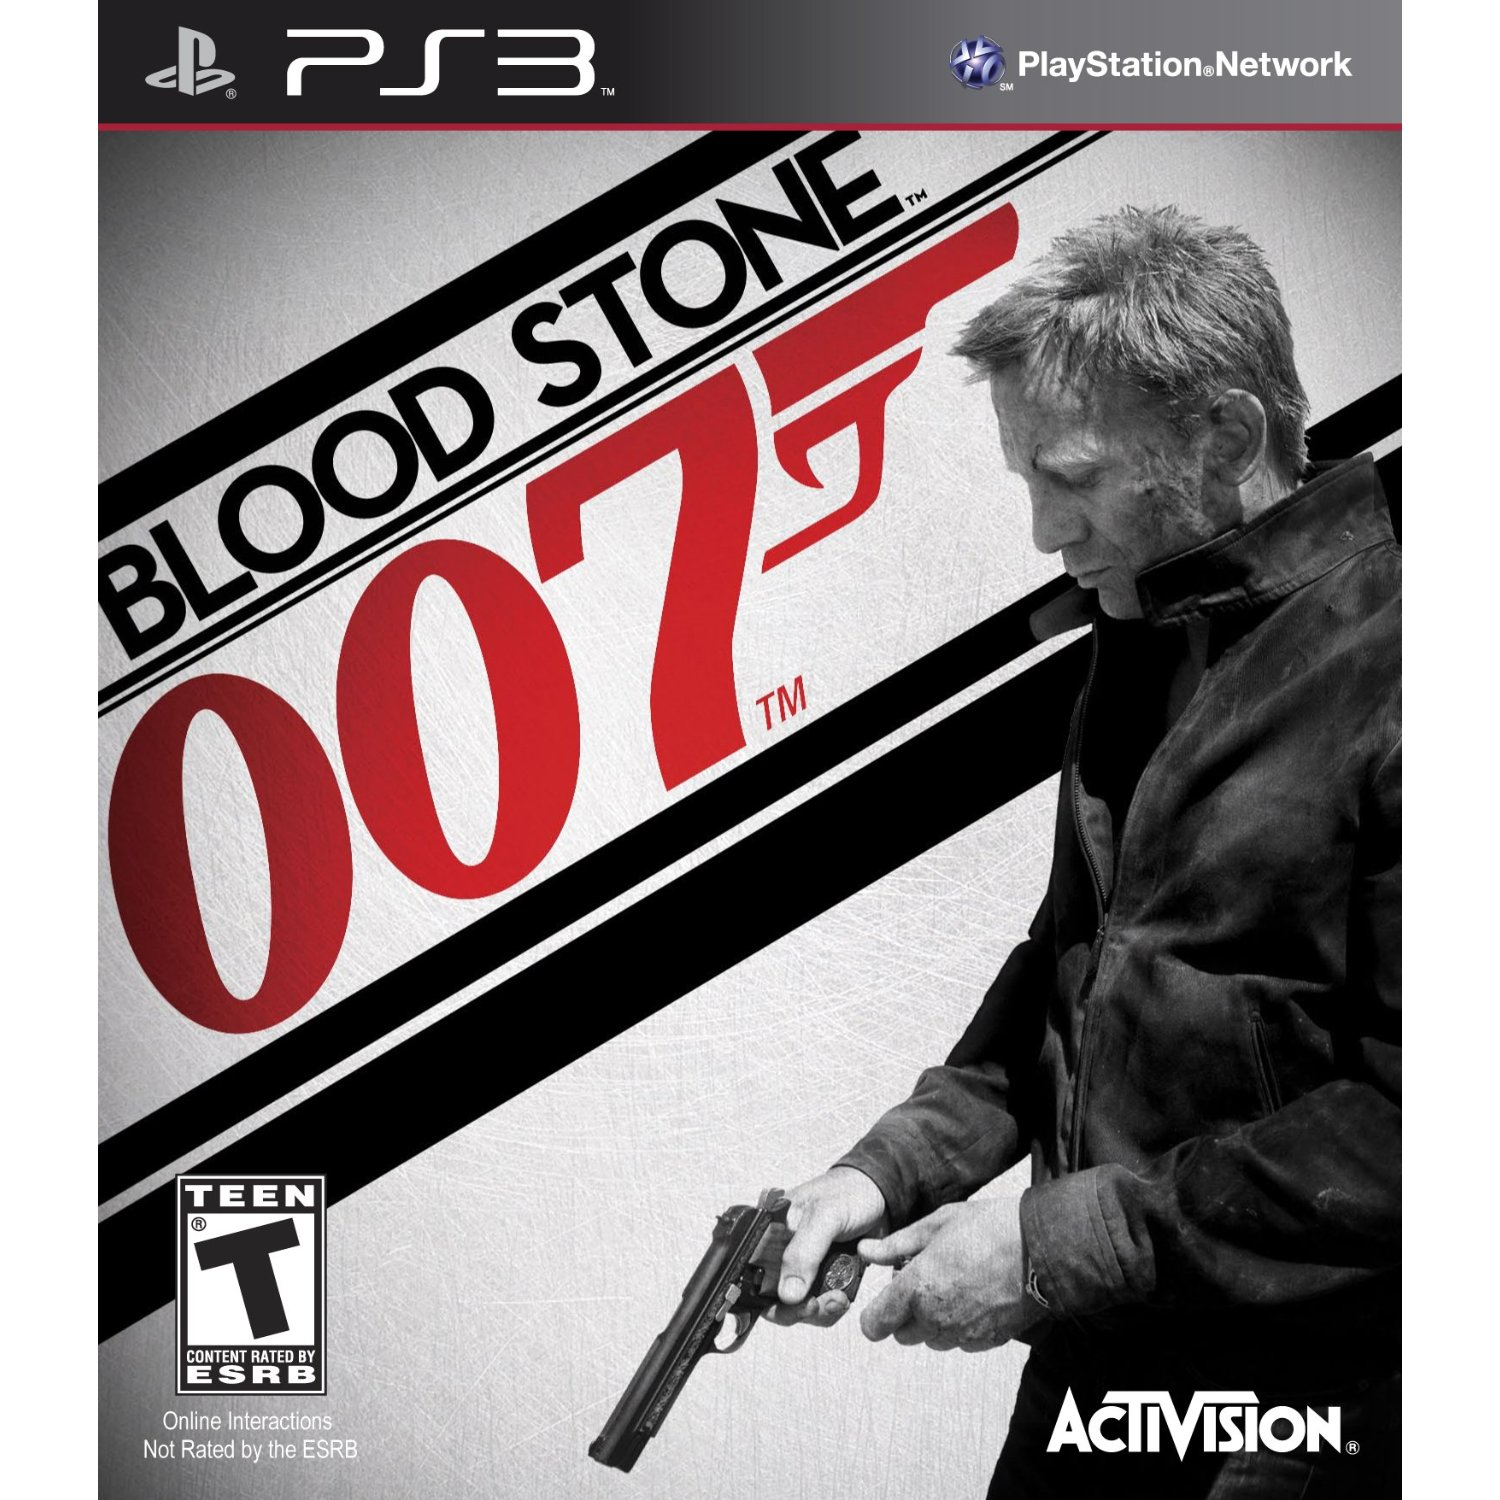 http://1.bp.blogspot.com/_zURGv9xJLgA/TN9rTulRbHI/AAAAAAAAA7Y/90GtwAGVR44/s1600/101025_james-bond-blood-stone-ps3.jpg